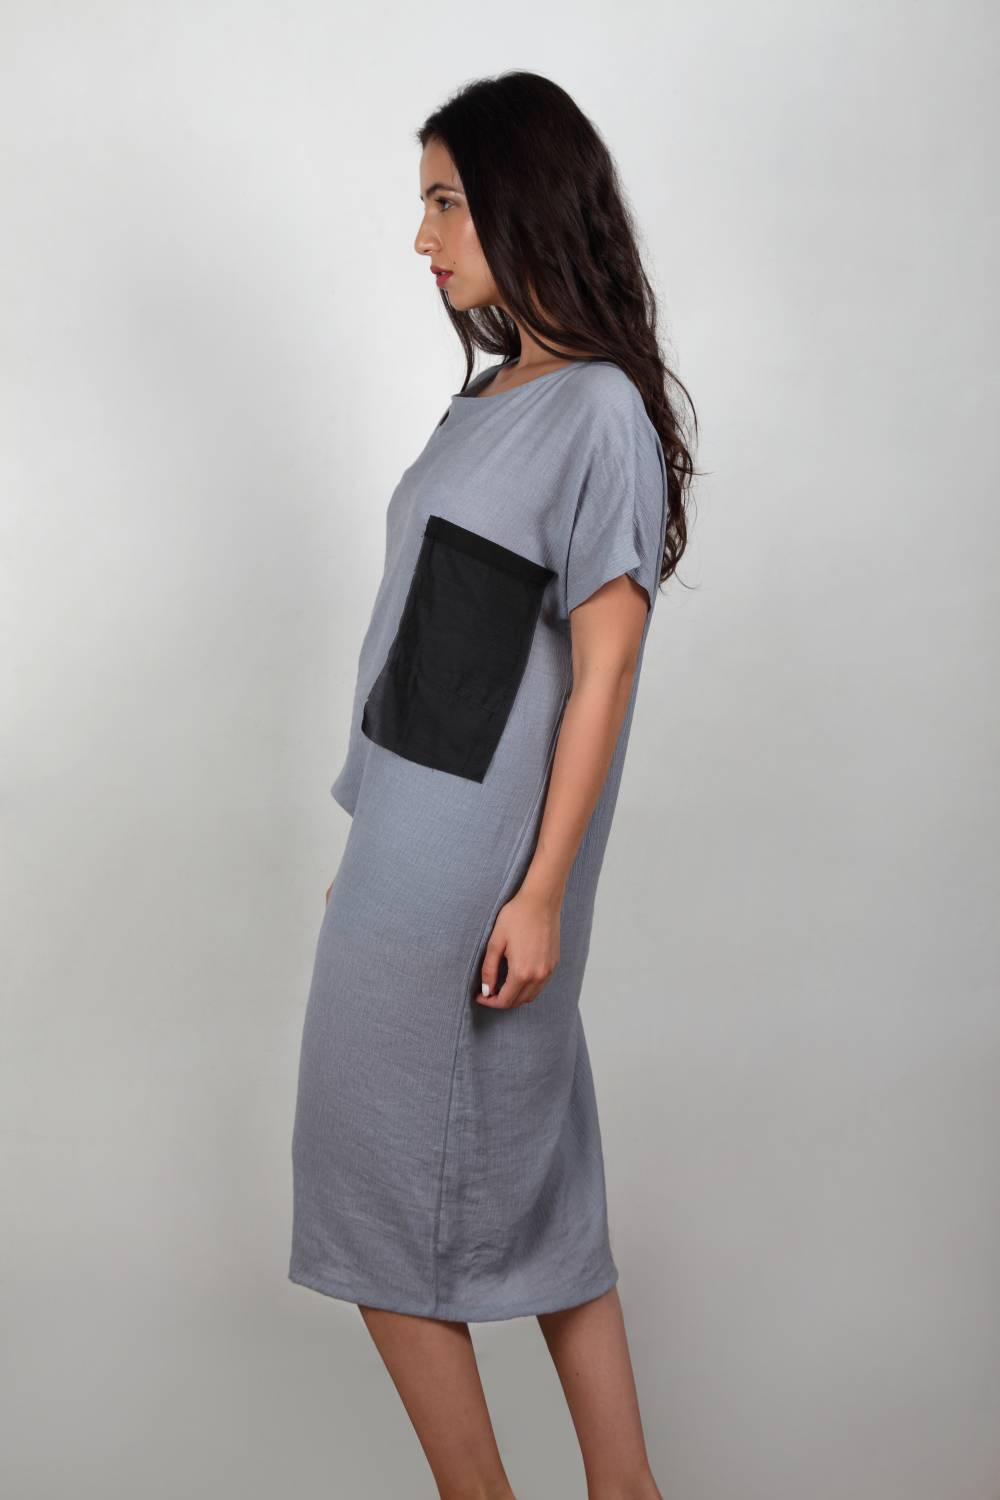 Come Thru - Charcoal Grey Rushed Dress